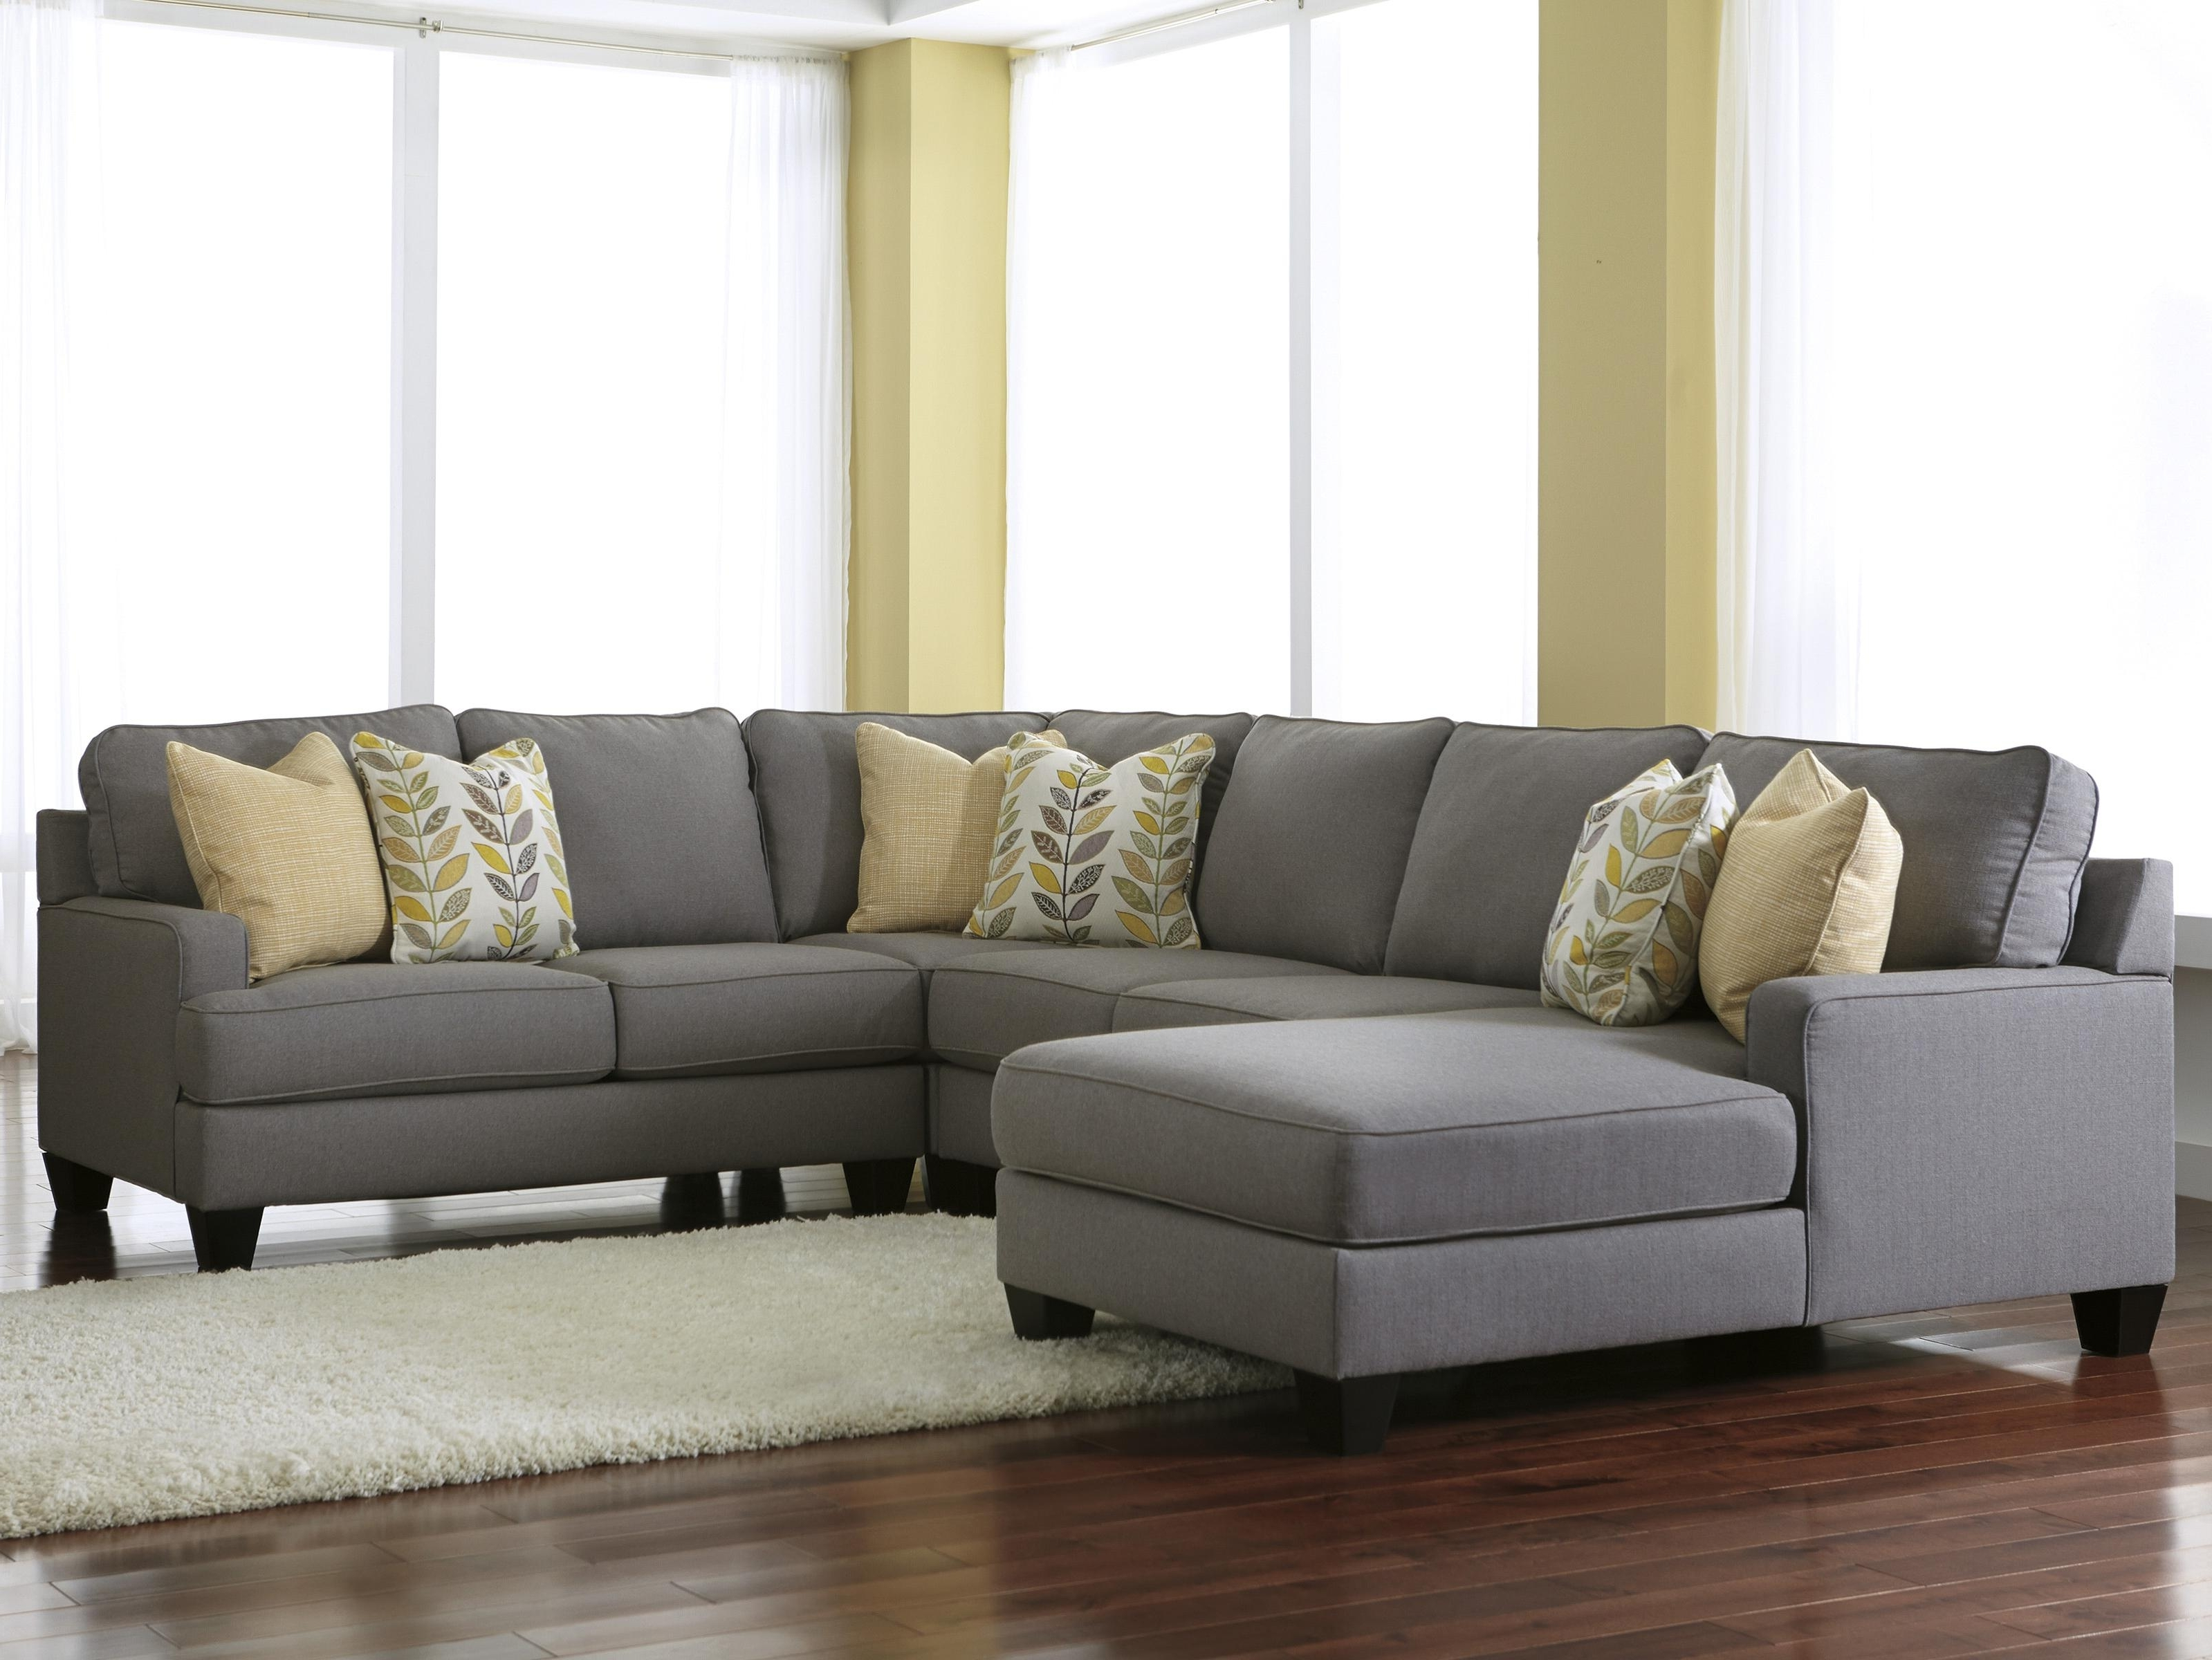 Fashionable Modern 4 Piece Sectional Sofa With Left Chaise & Reversible Seat Within Left Chaise Sectionals (View 8 of 15)